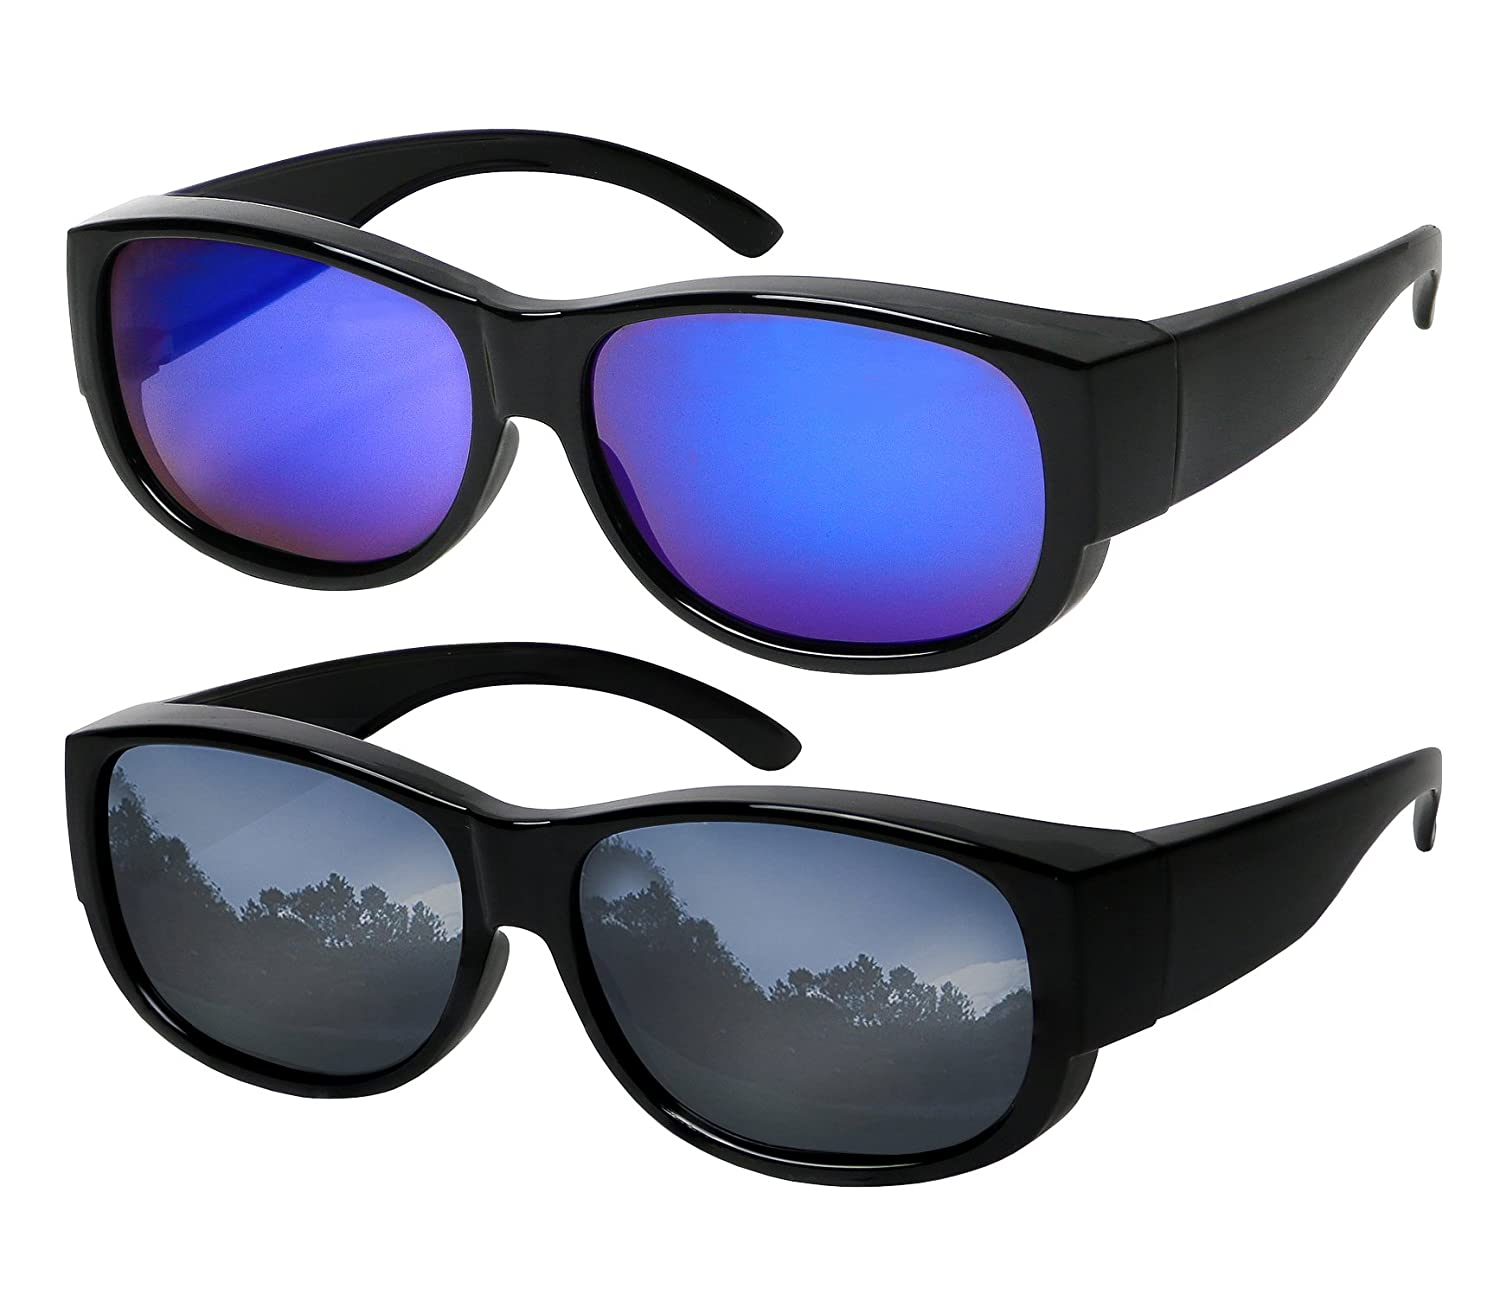 bee036045c22 Amazon.com  Fit Over Sunglasses Polarized Lens 100% UV Protection Wear Over  Prescription Eyeglasses Grey Mirror and Blue Mirror Fitovers for Men and  Women  ...